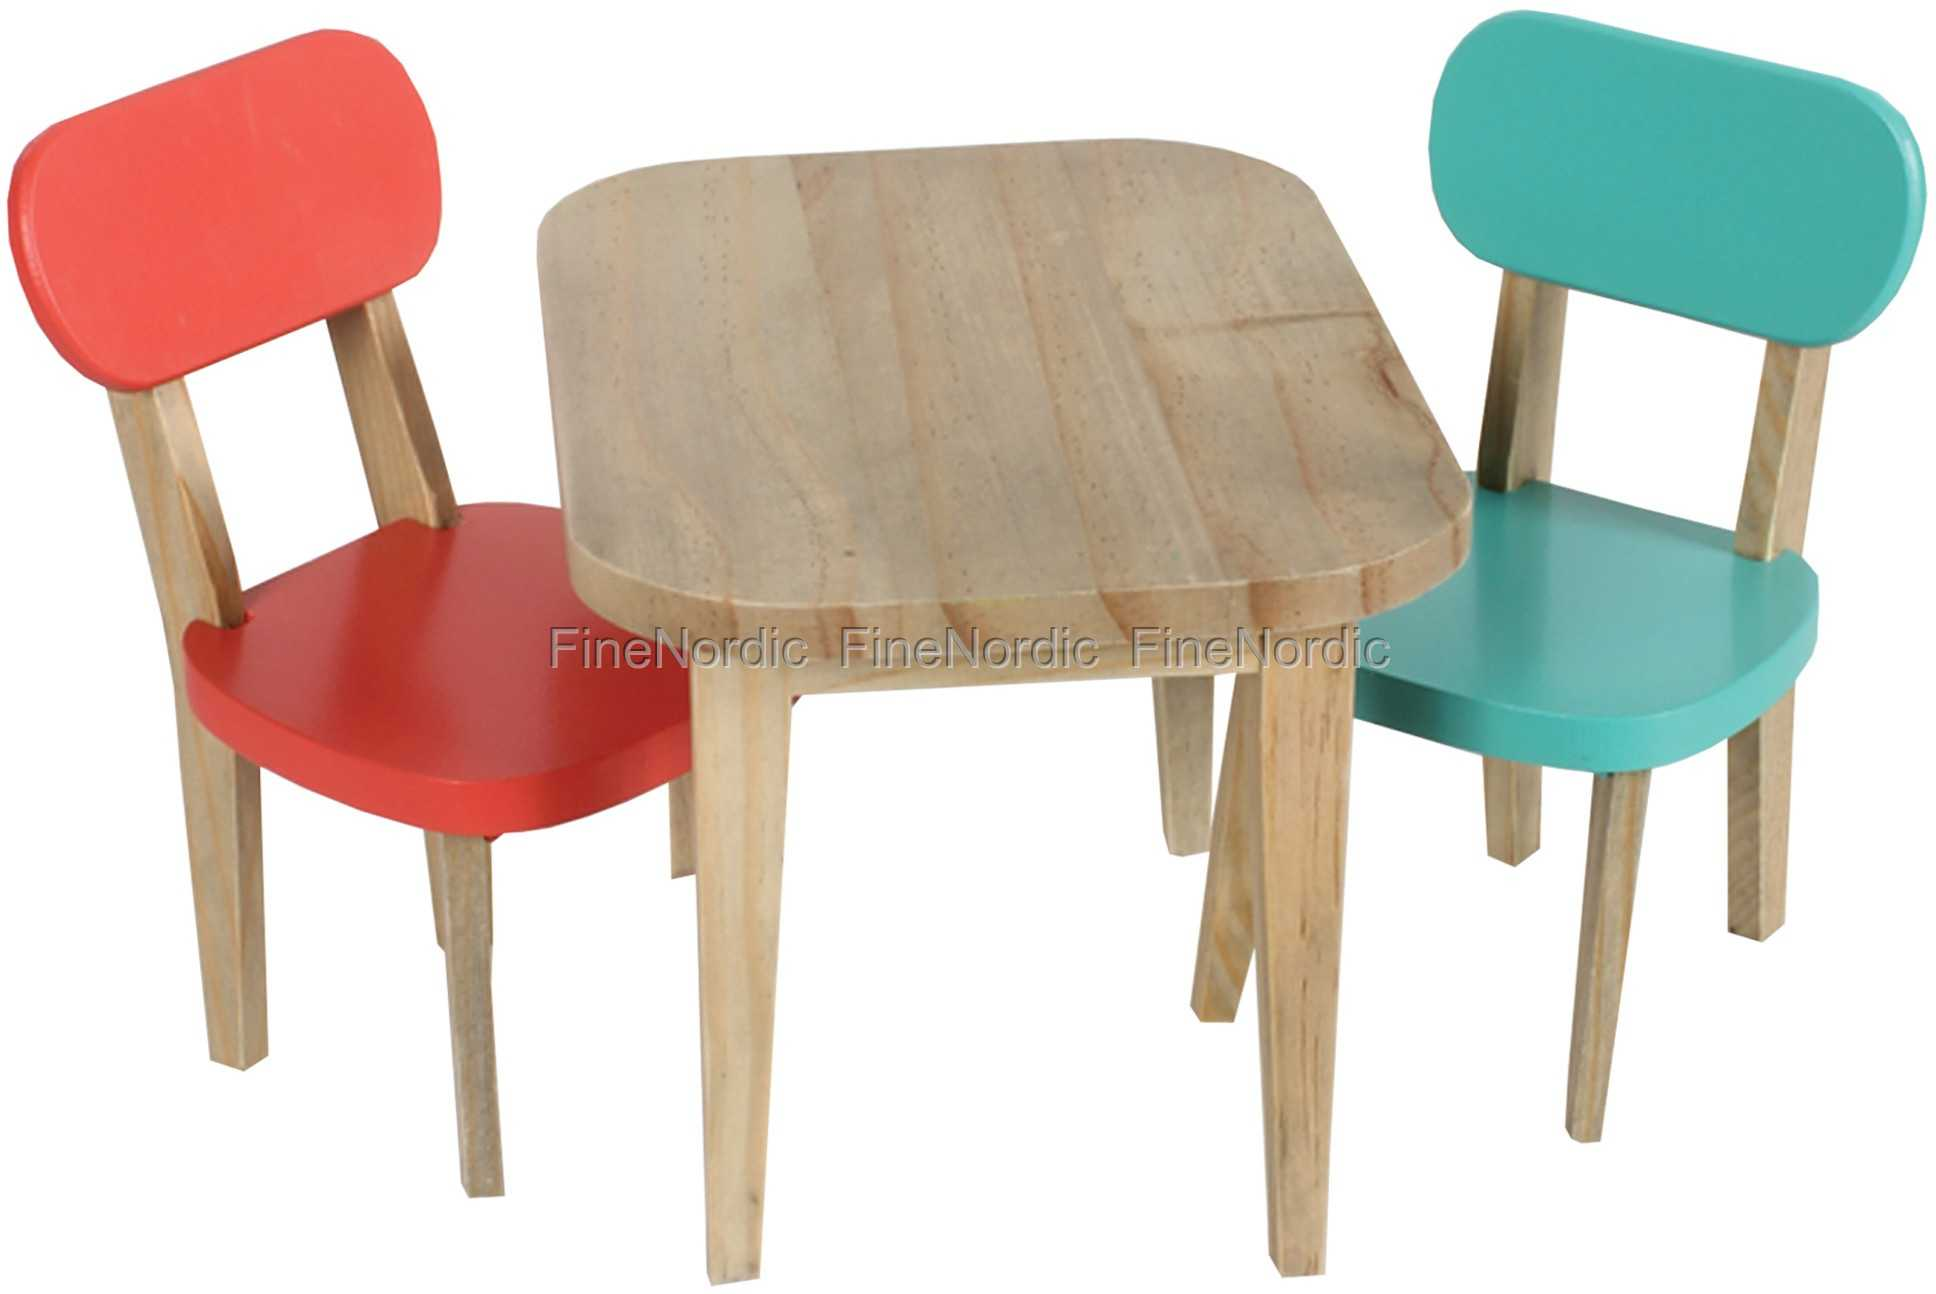 Maileg Rabbit Wooden Table and 2 Chairs   Turquise and Coral  Buy online here  Product Code 11